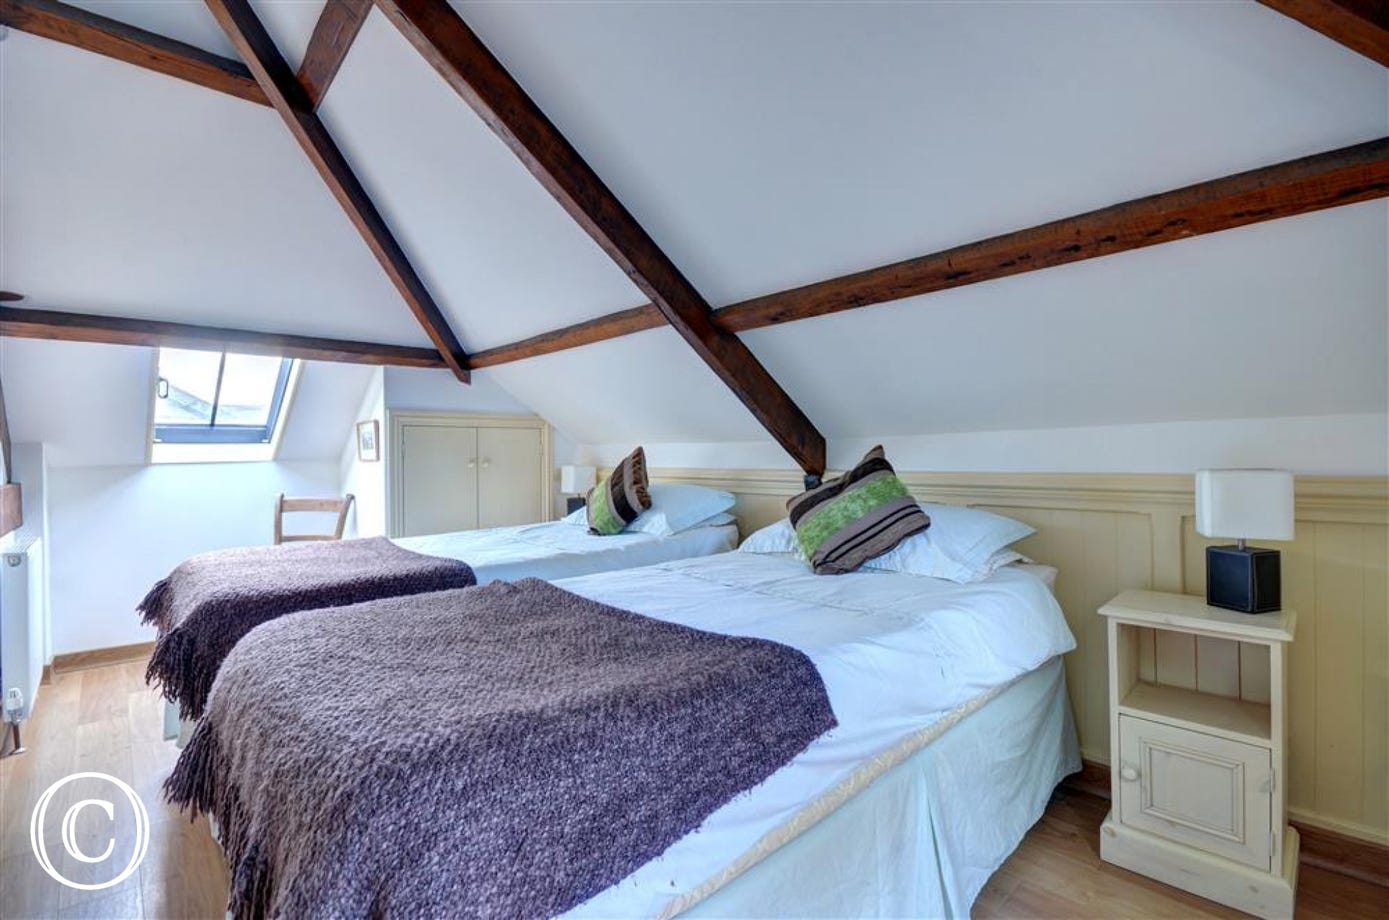 Lovely beamed ceiling and twin beds.